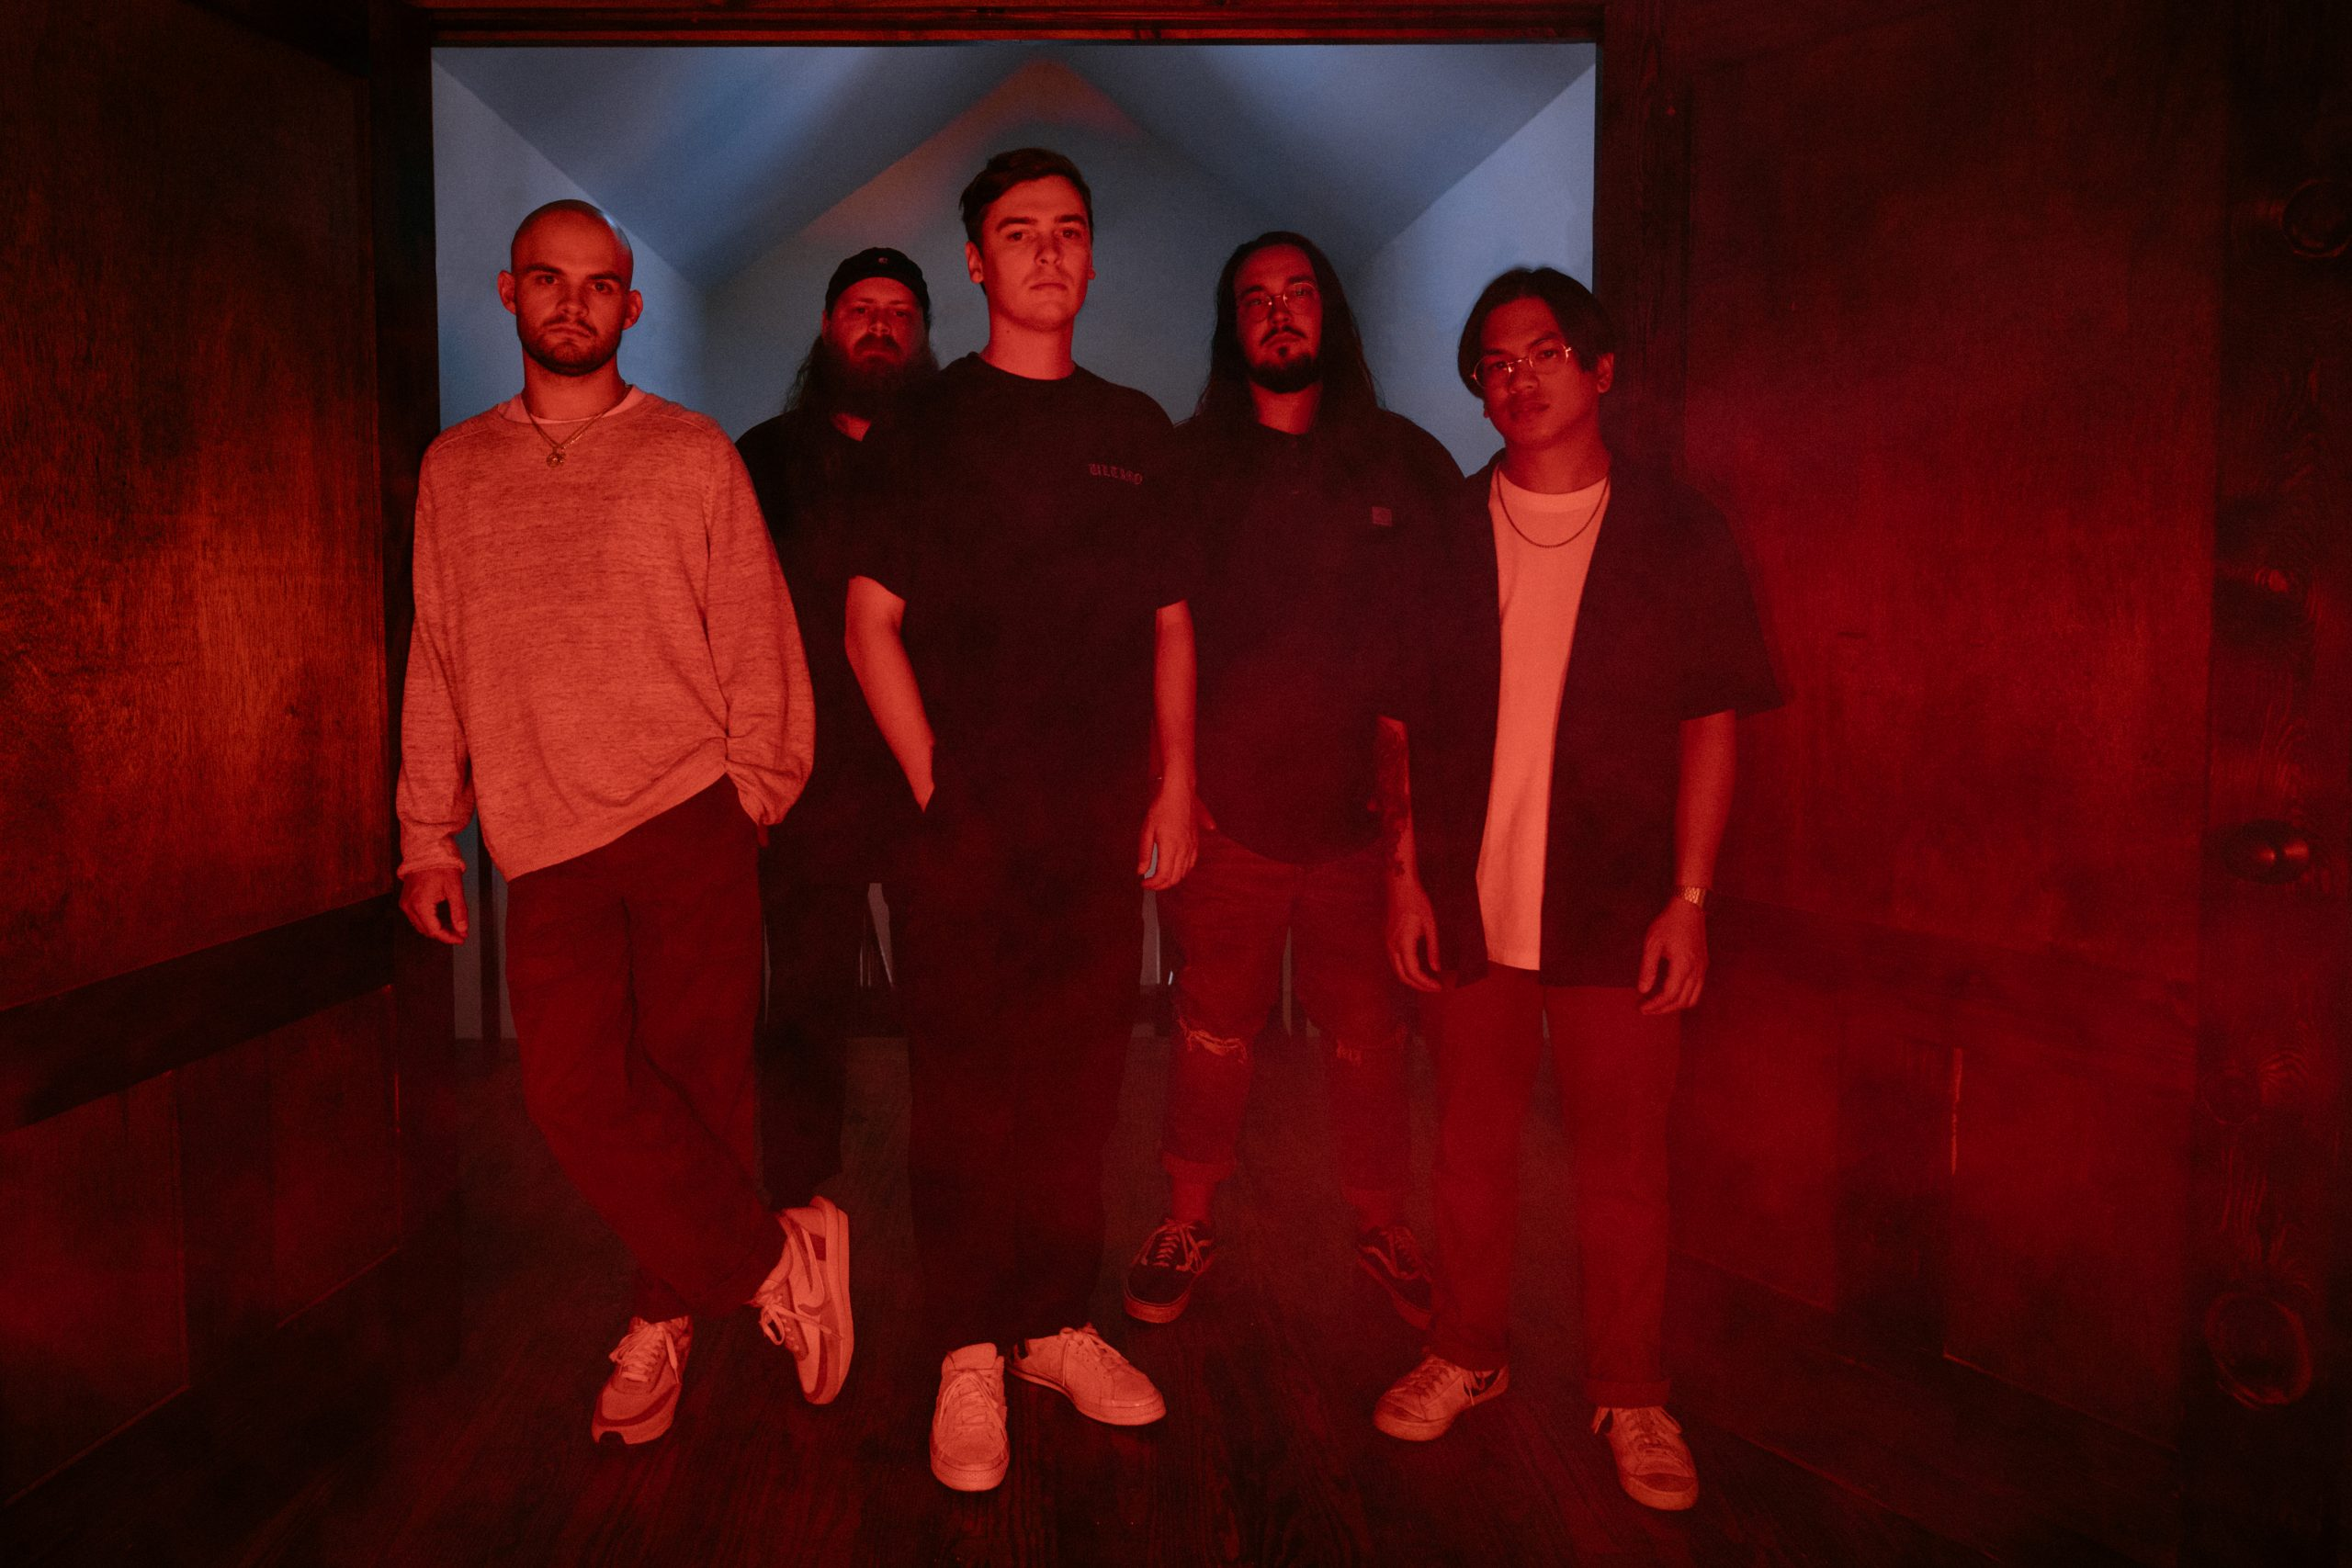 MUSIC NEWS: Knocked Loose Release New EP 'A Tear In The Fabric Of Life' Alongside Animated Short Film